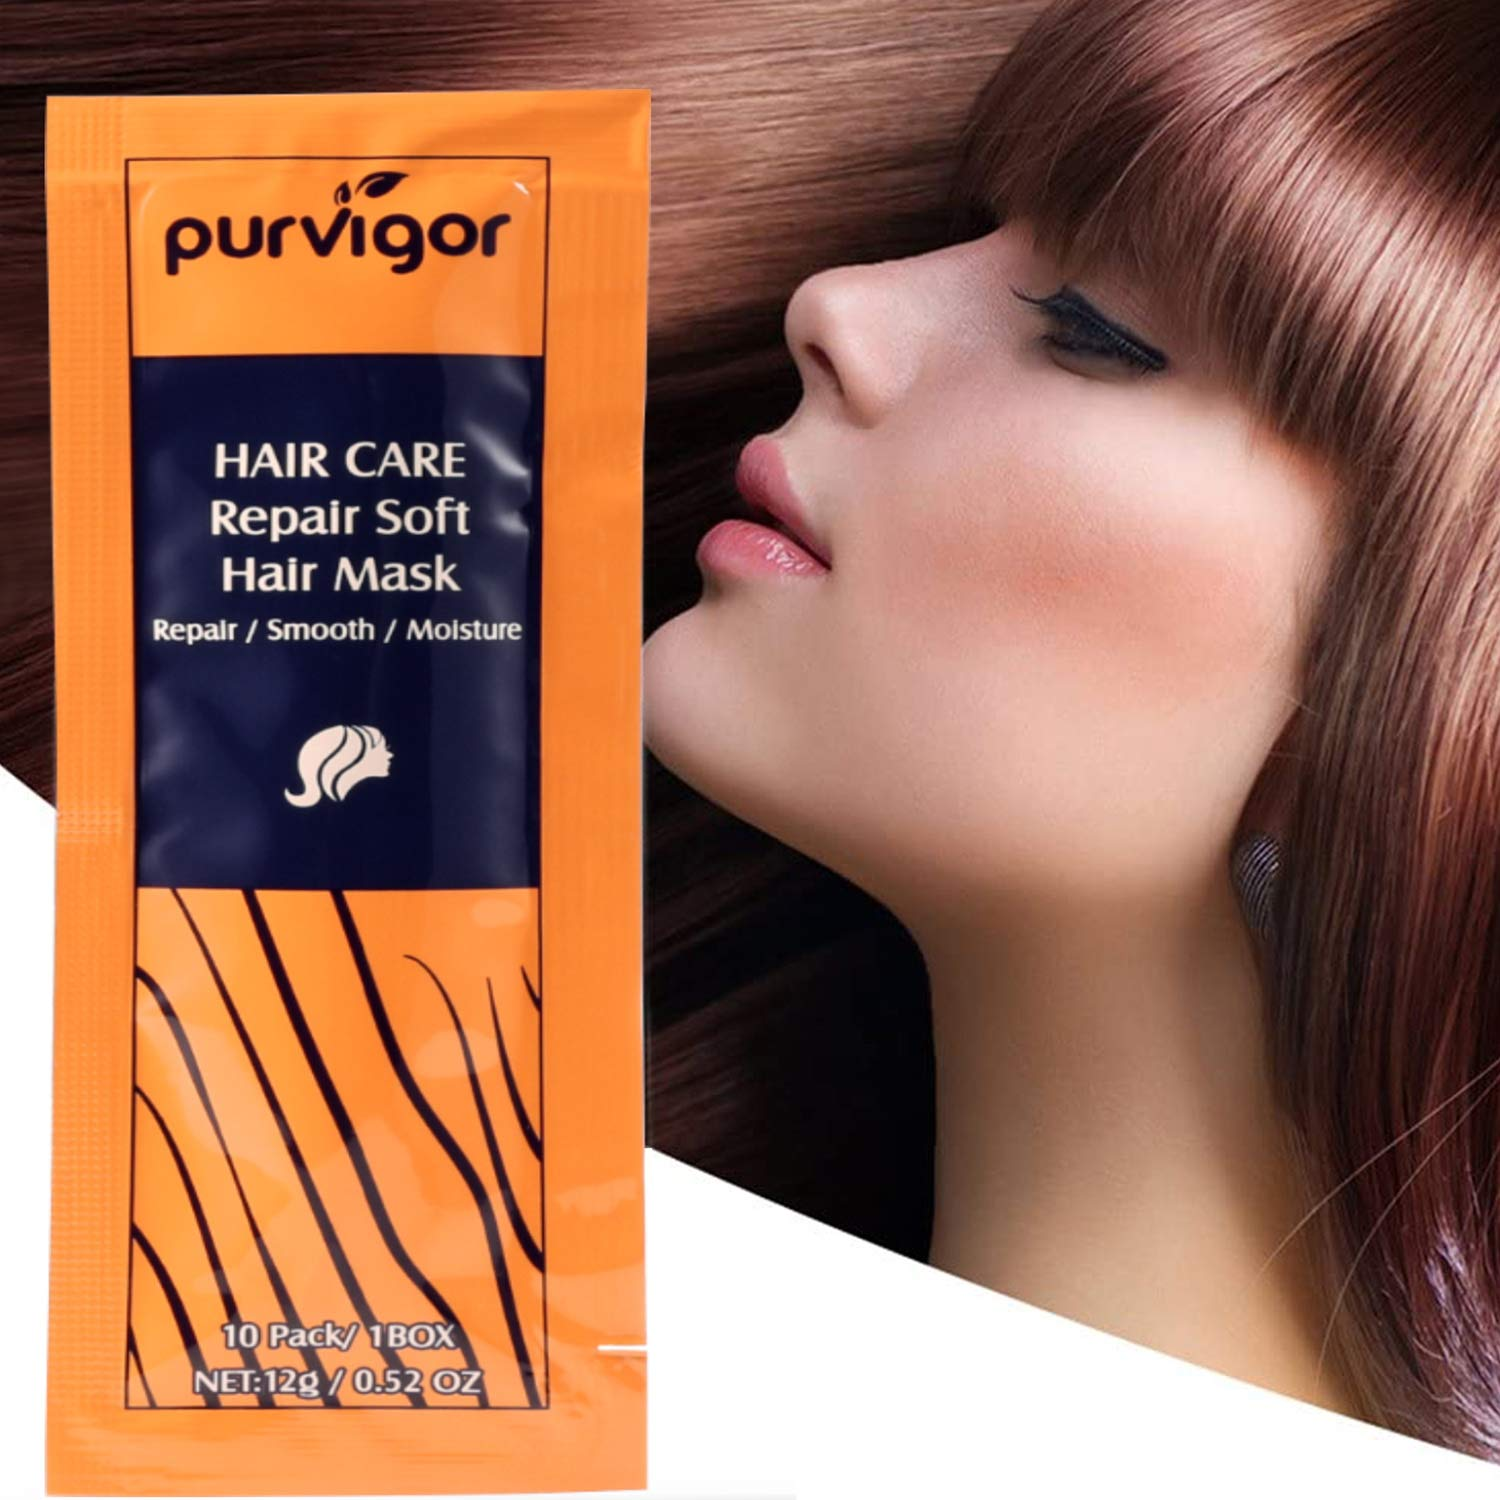 Hair Mask - 10 Factory outlet pack Natural Deep Max 68% OFF Keratin Conditioner